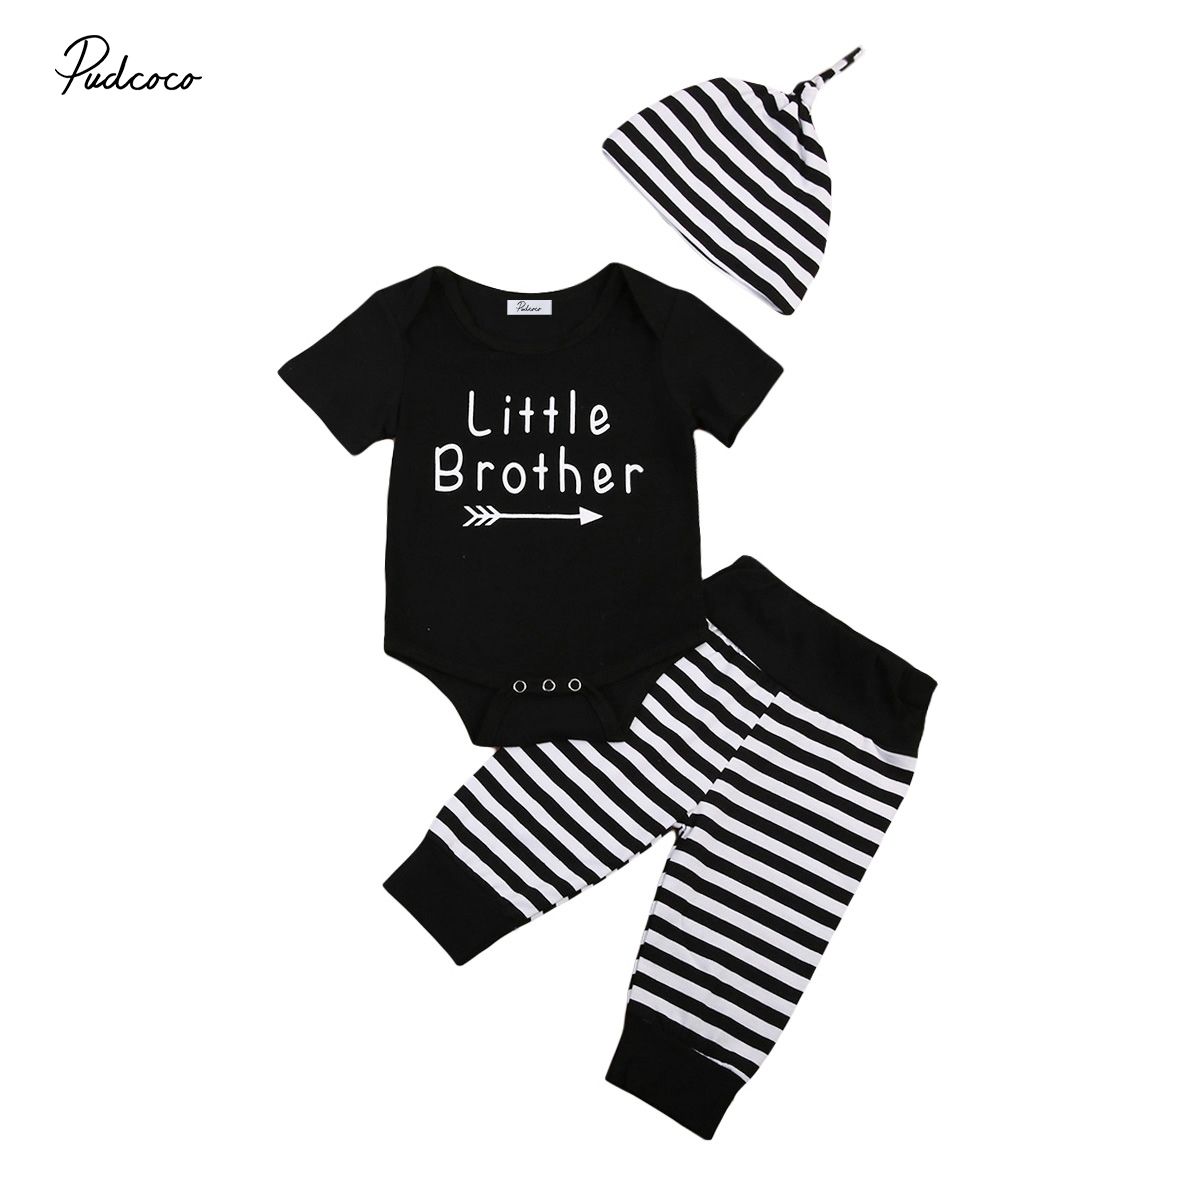 2017 Newborn Infant Baby Boy Clothes Set Outfits Clothes Little Brother Boy Romper Jumpsuit Pants 3pcs Outfits Boy Clothes Set newborn baby boy girl clothes set short sleeve top bodysuits leg warmer bow headband 3pcs clothing outfits set